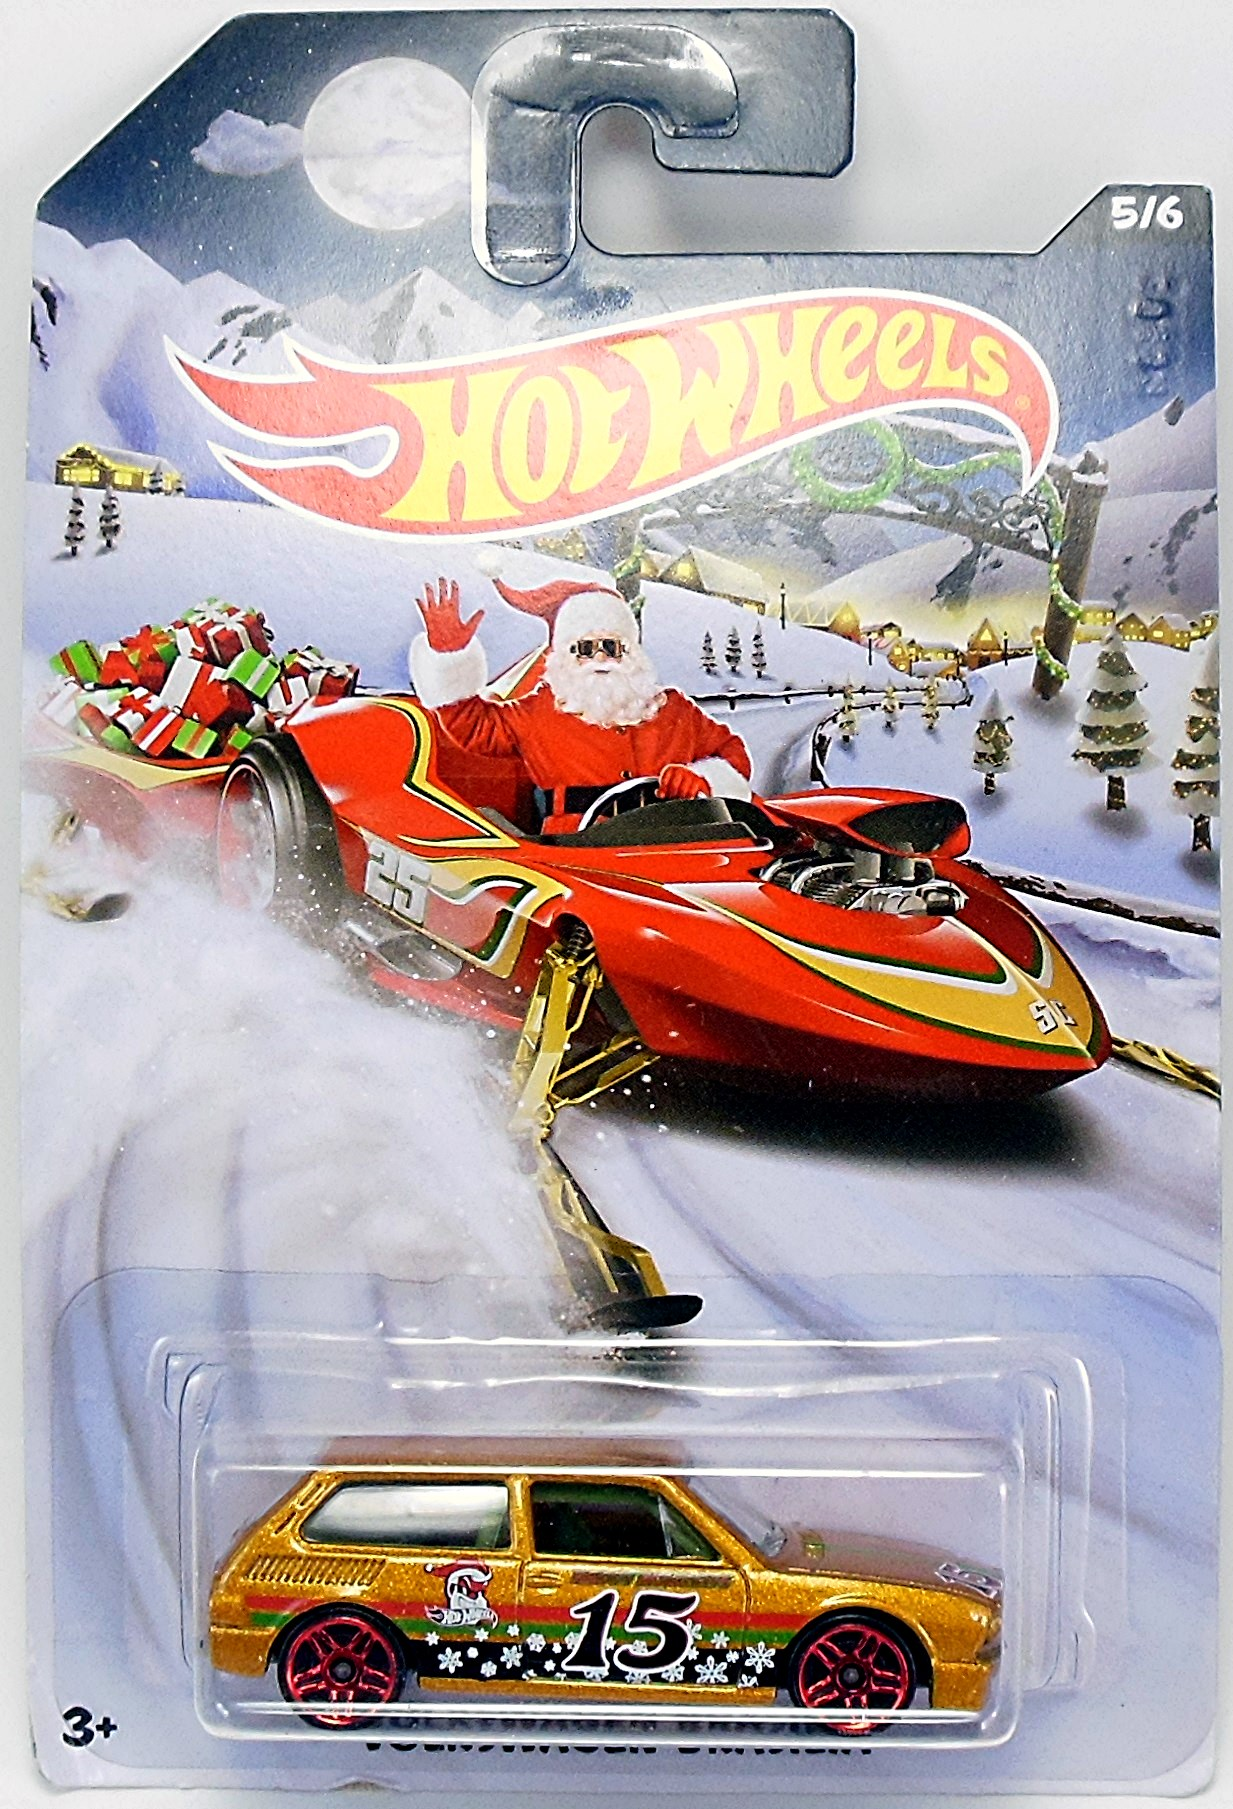 Toy Island Toys 2015 Holiday Hot Rods Hot Wheels Newsletter